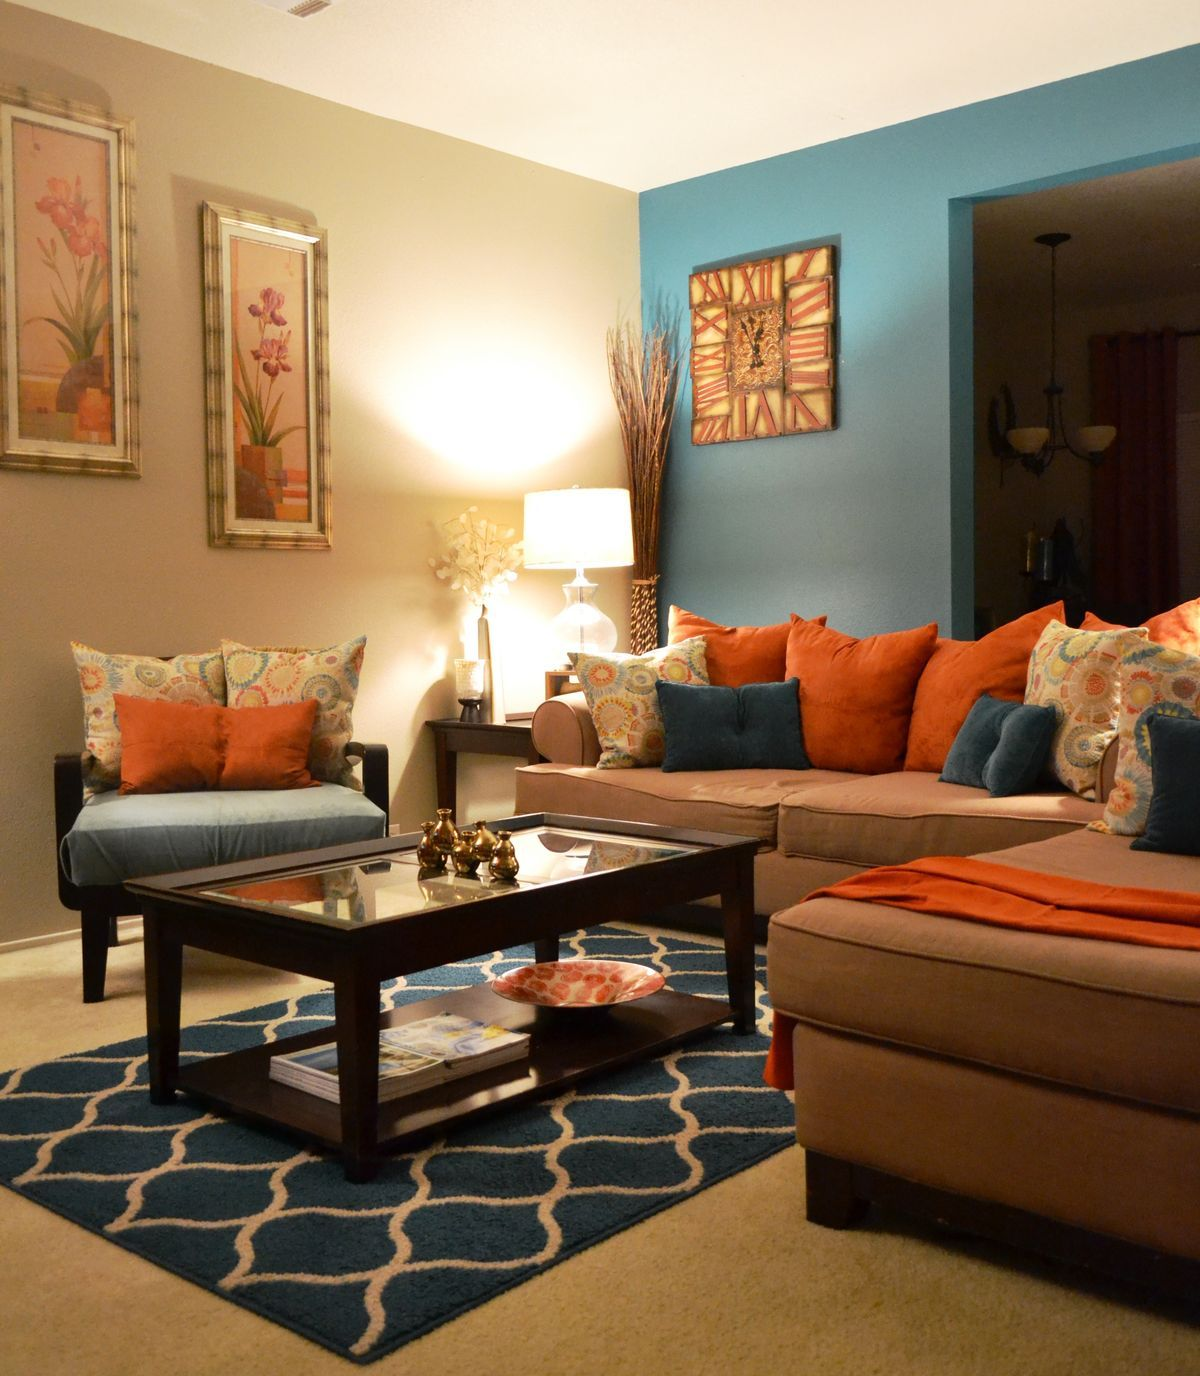 Blue and orange living room - 959558b7a3913104a5cf8d0b8a3810c7 Jpg 1 200 1 376 Pixels Living Room Orangeorange